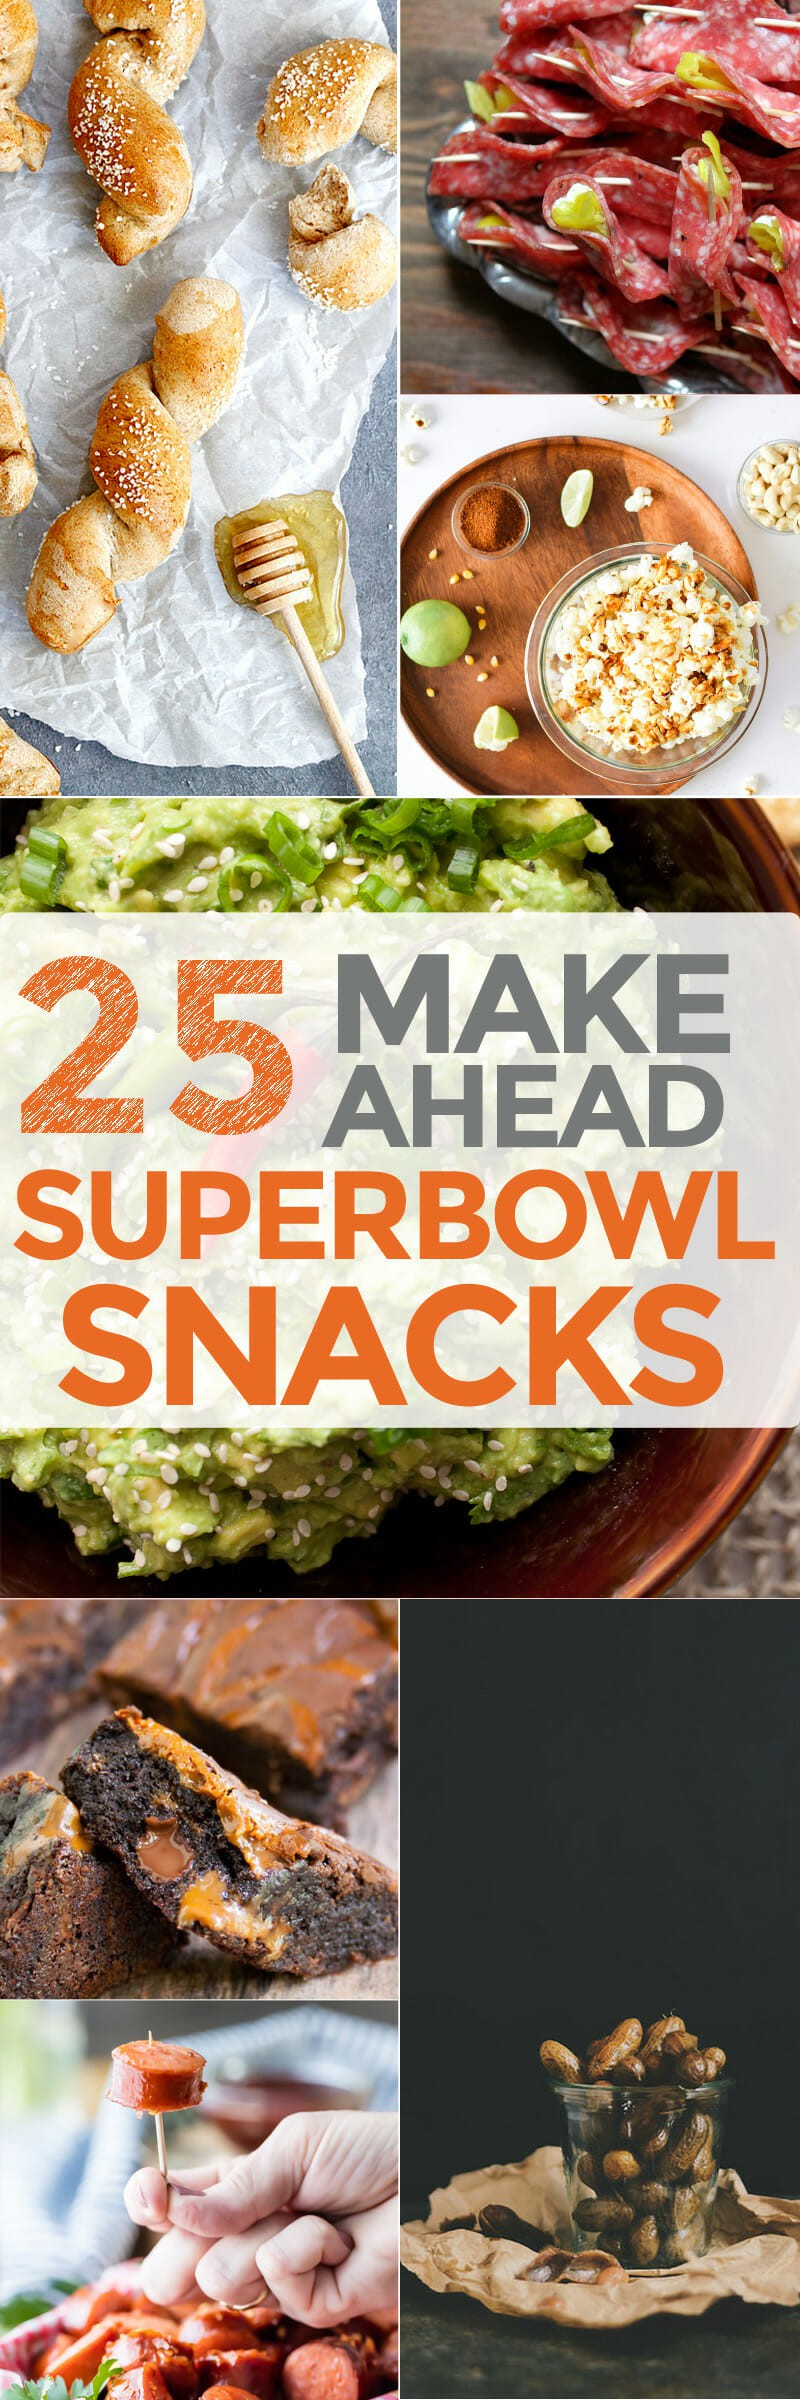 25 Make Ahead Superbowl Snacks: These awesome recipes are easy to make in advance so you can chill and watch the game without running back and forth to the kitchen. Relax, eat well, and enjoy the game! | macheesmo.com